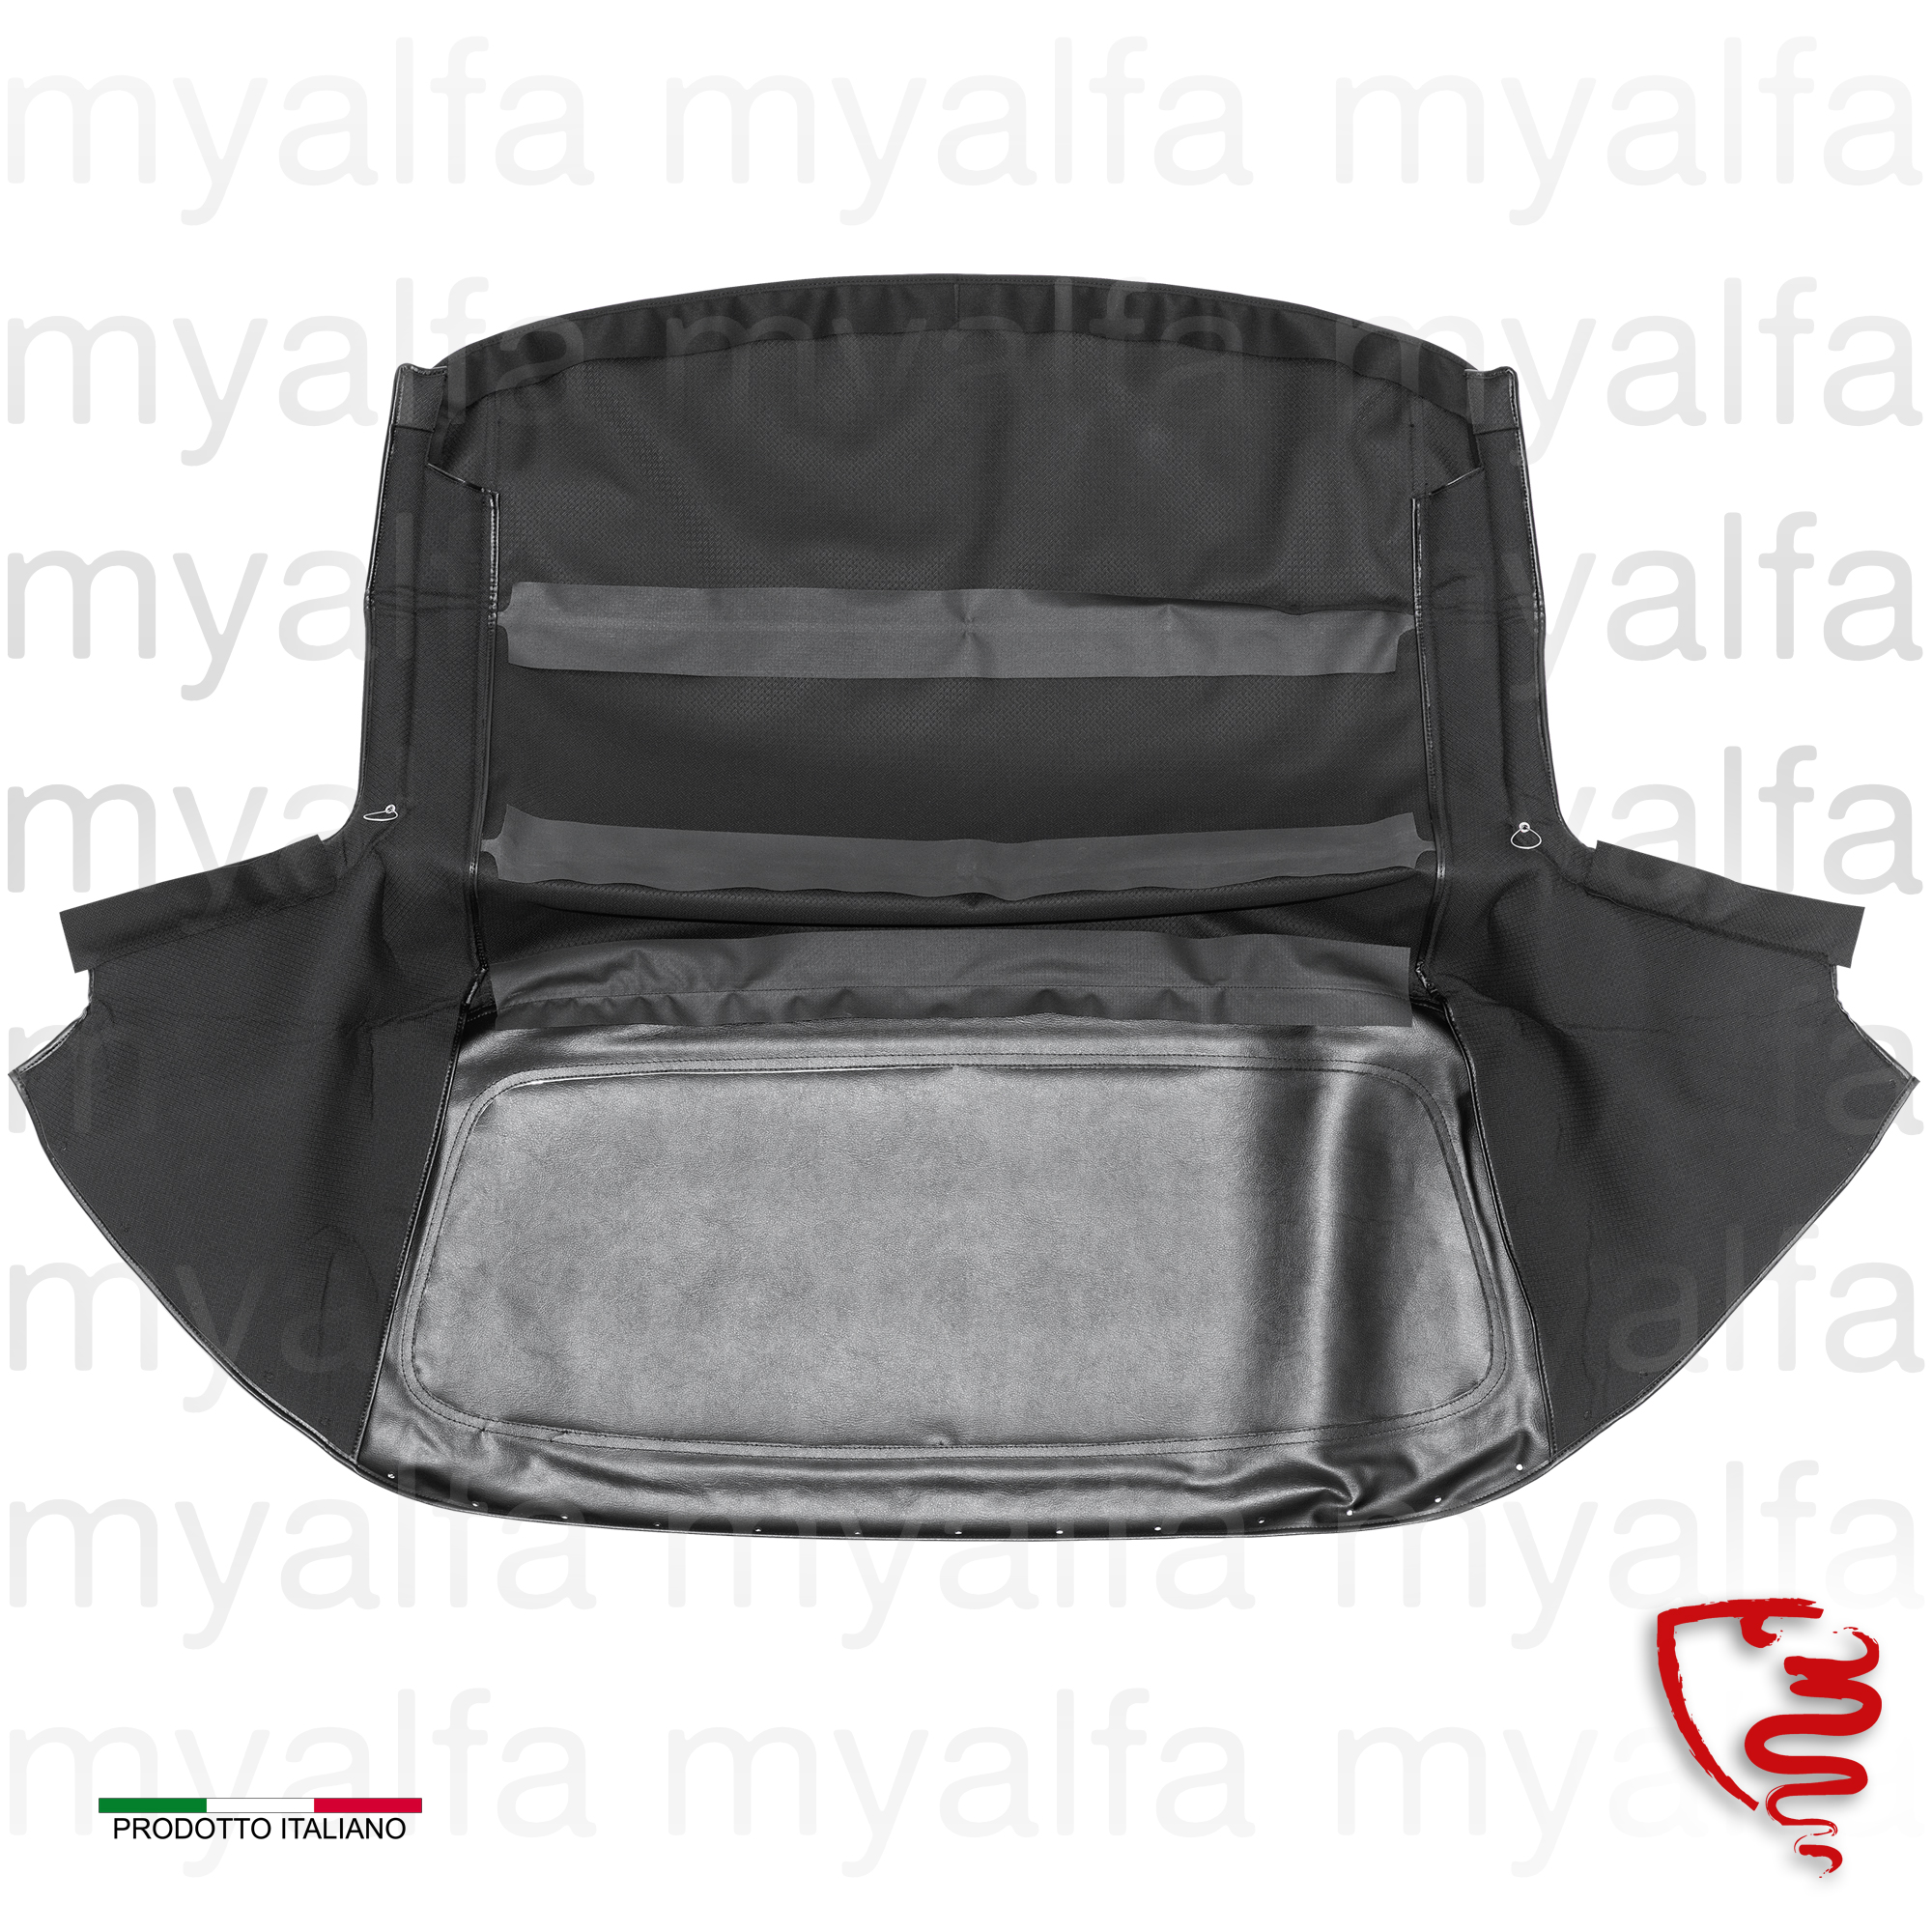 Bonnet Red Canvas in Sonneland Spider 1970-93 for 105/115, Spider, Body parts, Top Covers, Convertible top